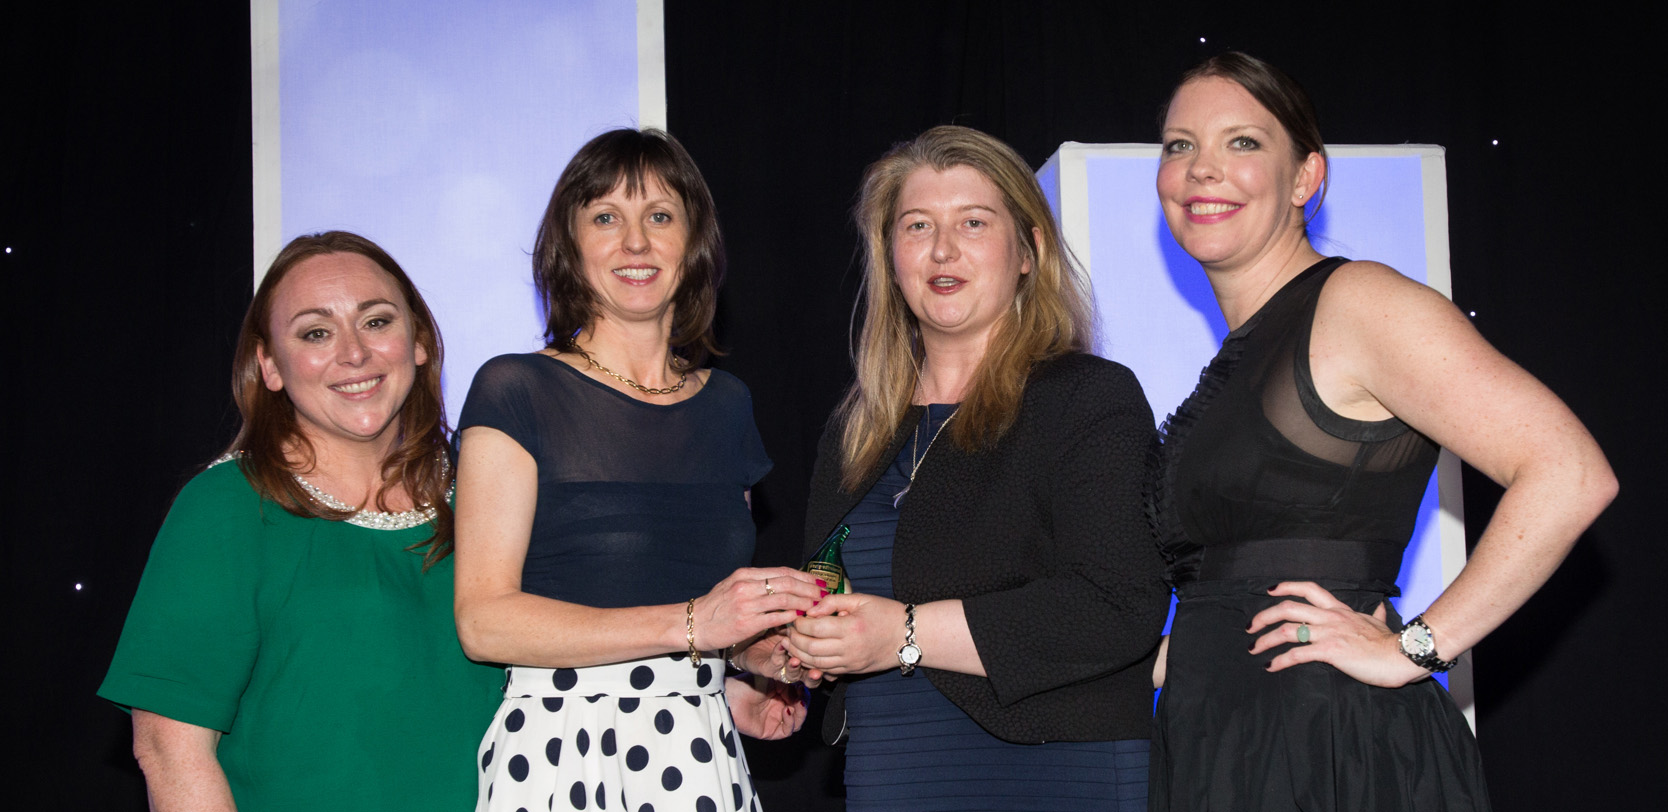 Double win for UCC at gradireland awards